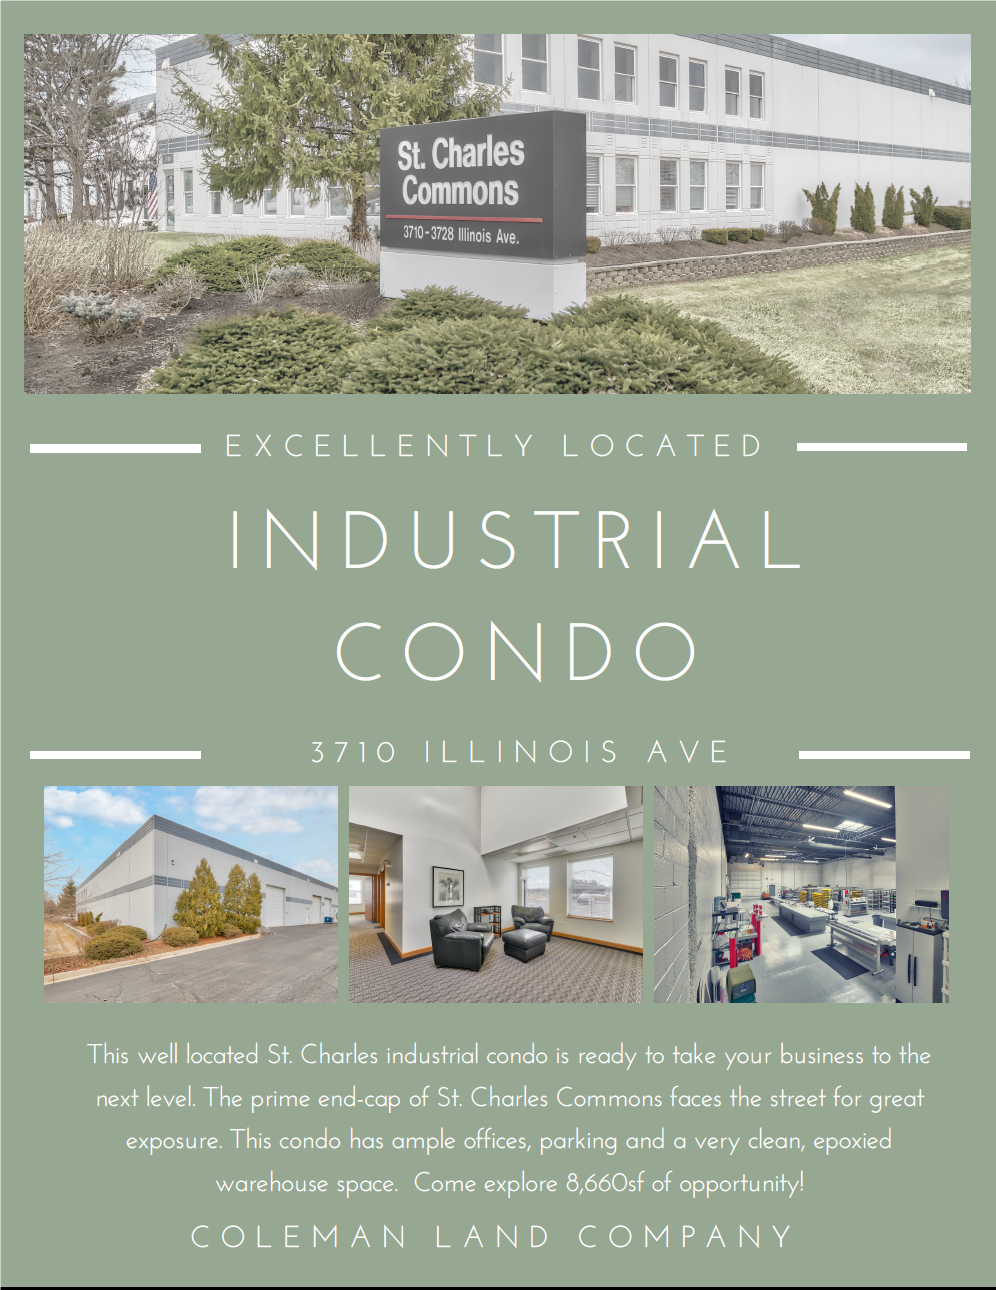 Well Located Industrial Condo